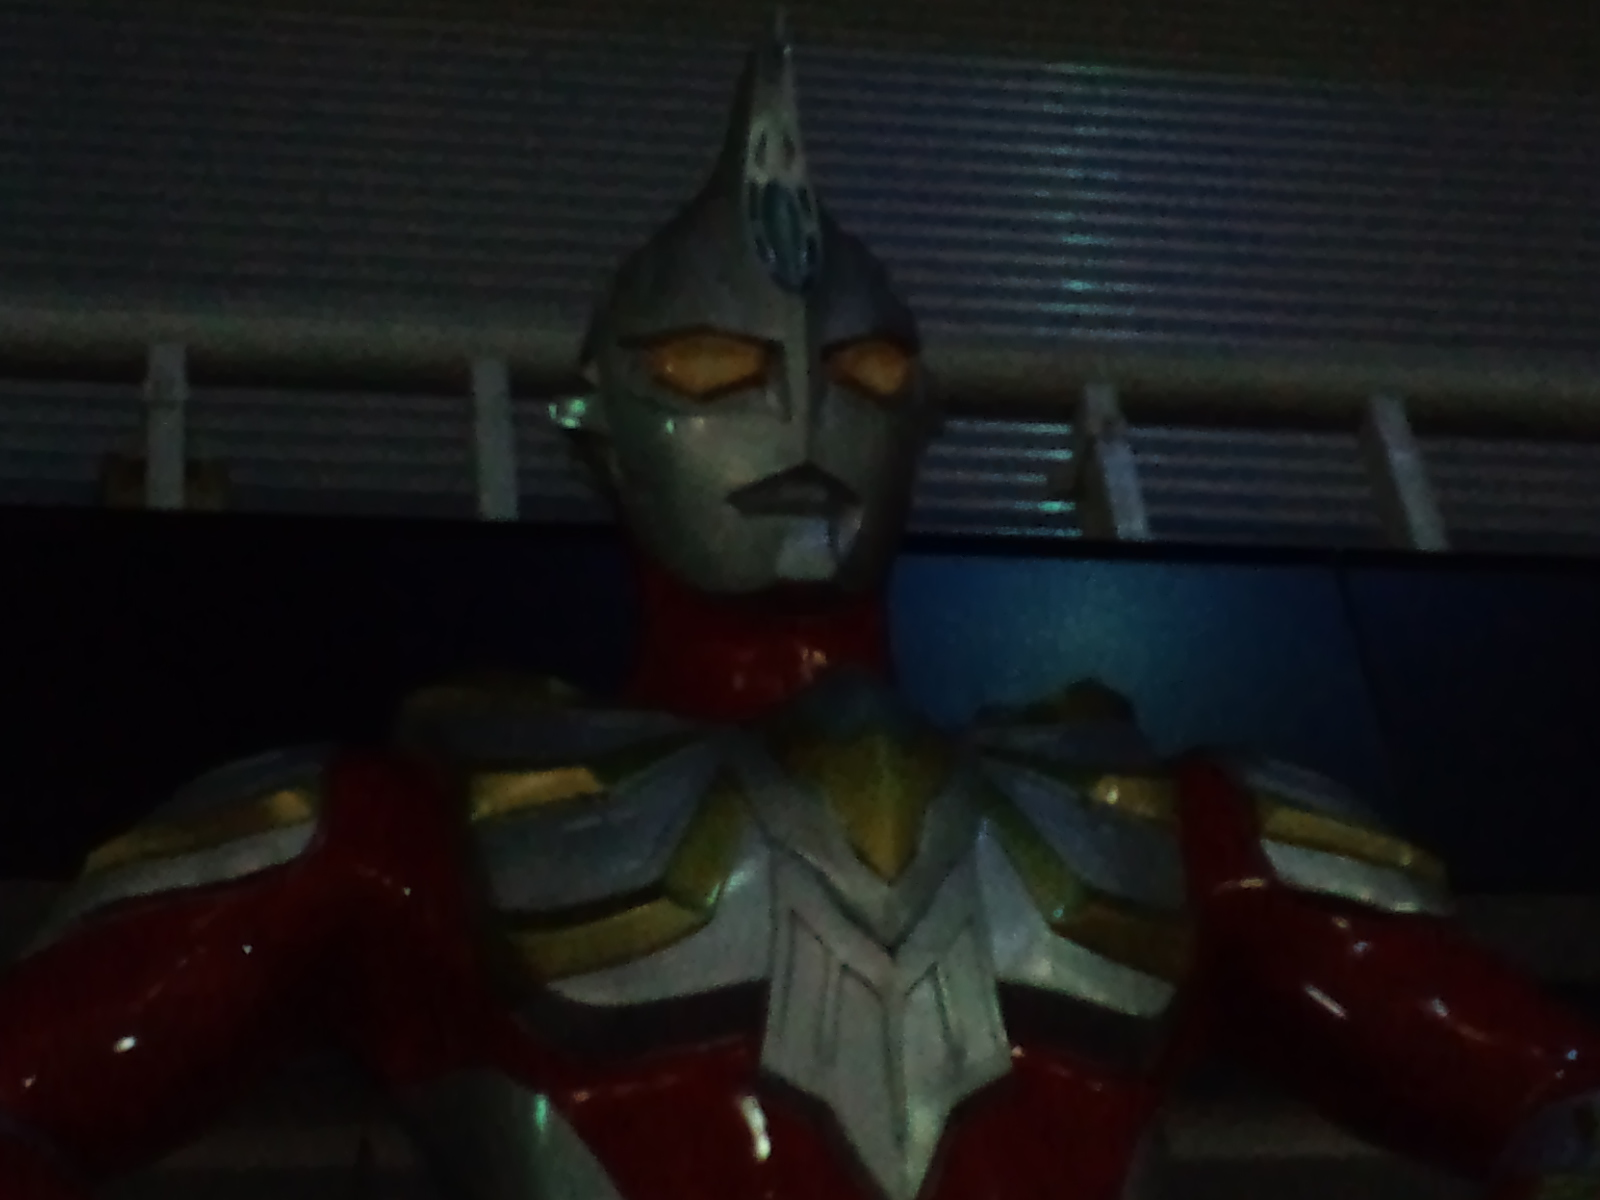 Here comes the Ultra-man!!